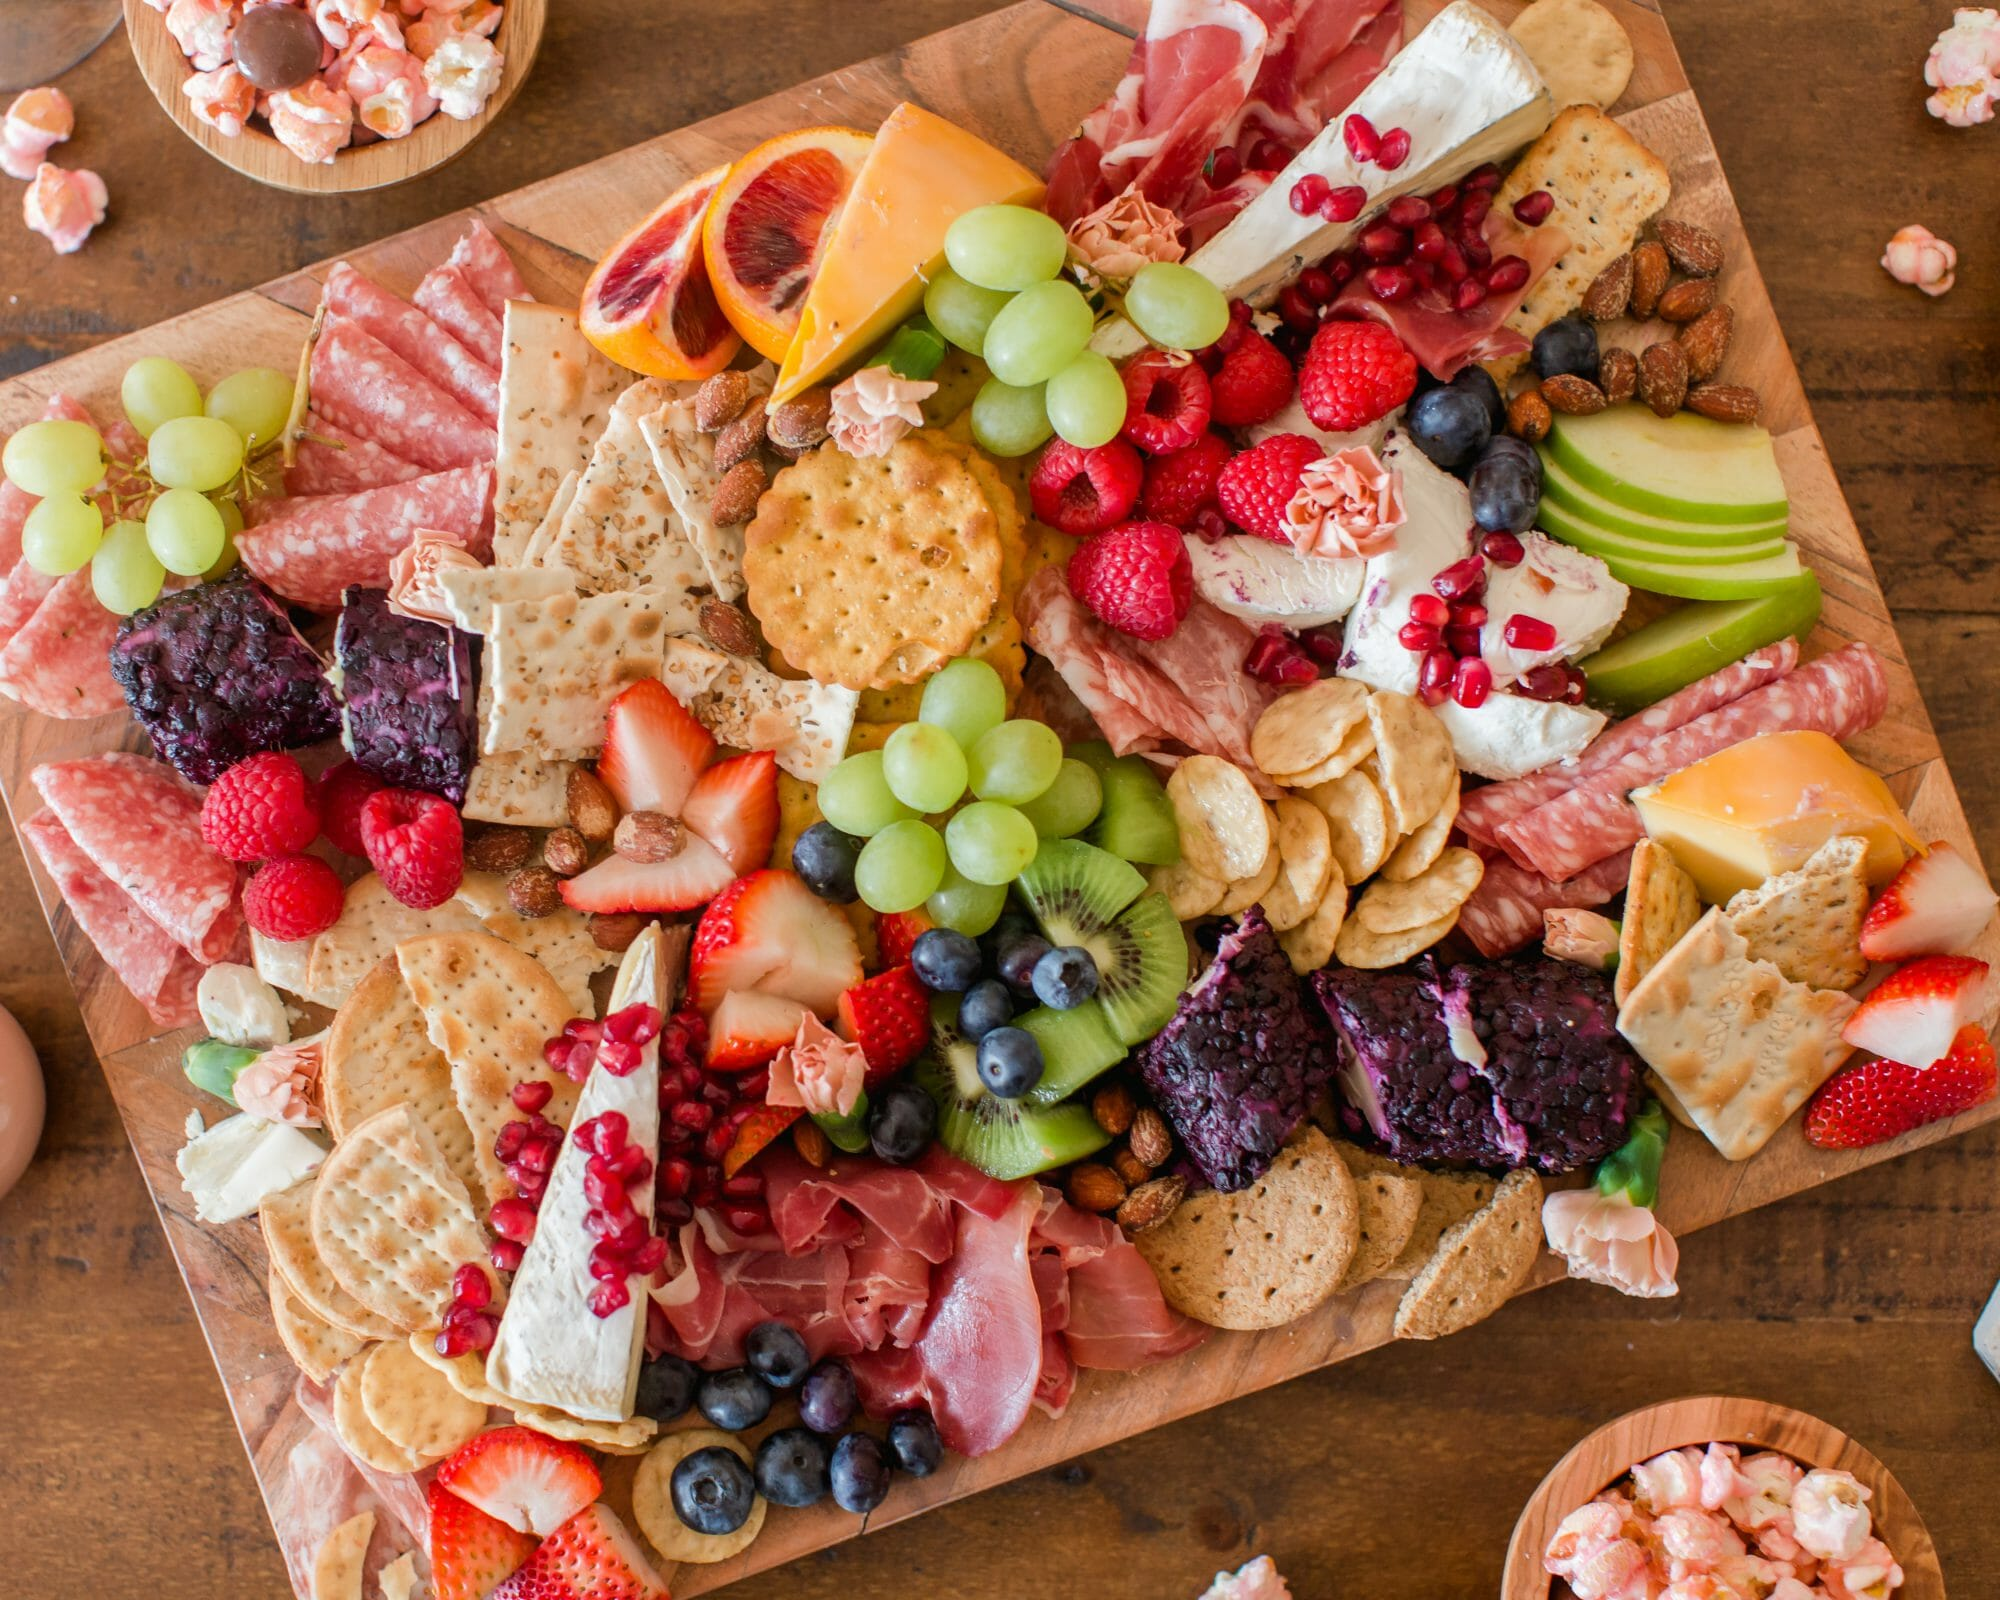 Here's how to host the ultimate girls night and ladies watch party including how to make charcuterie & charTREATerie boards! || JennyCookies.com #girlsnight #ladiesnight #watchparty #charcuterieboards #jennycookies